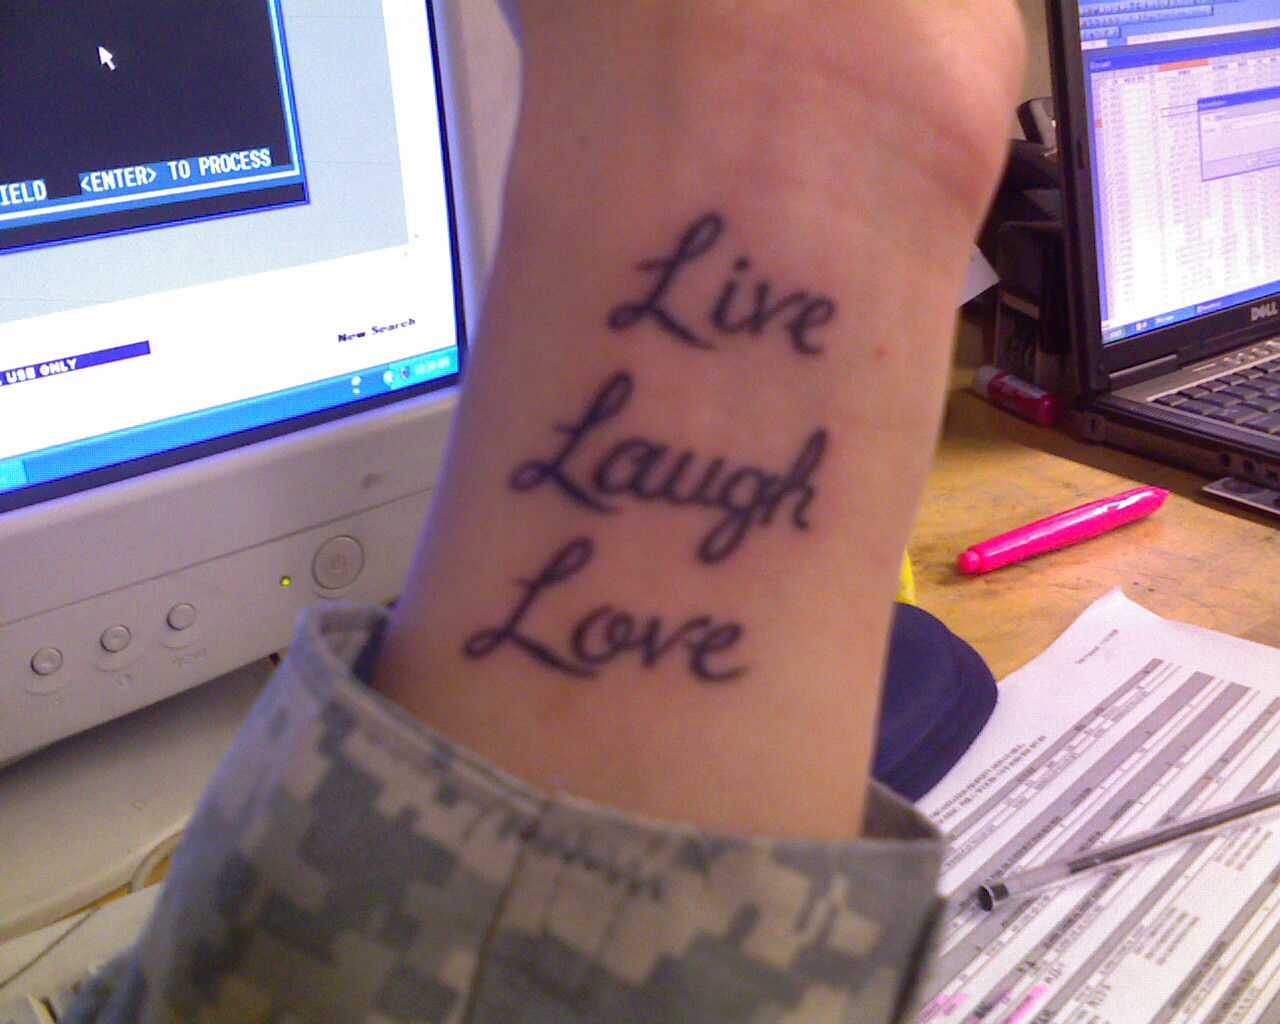 Live, Laugh, Love on wrist